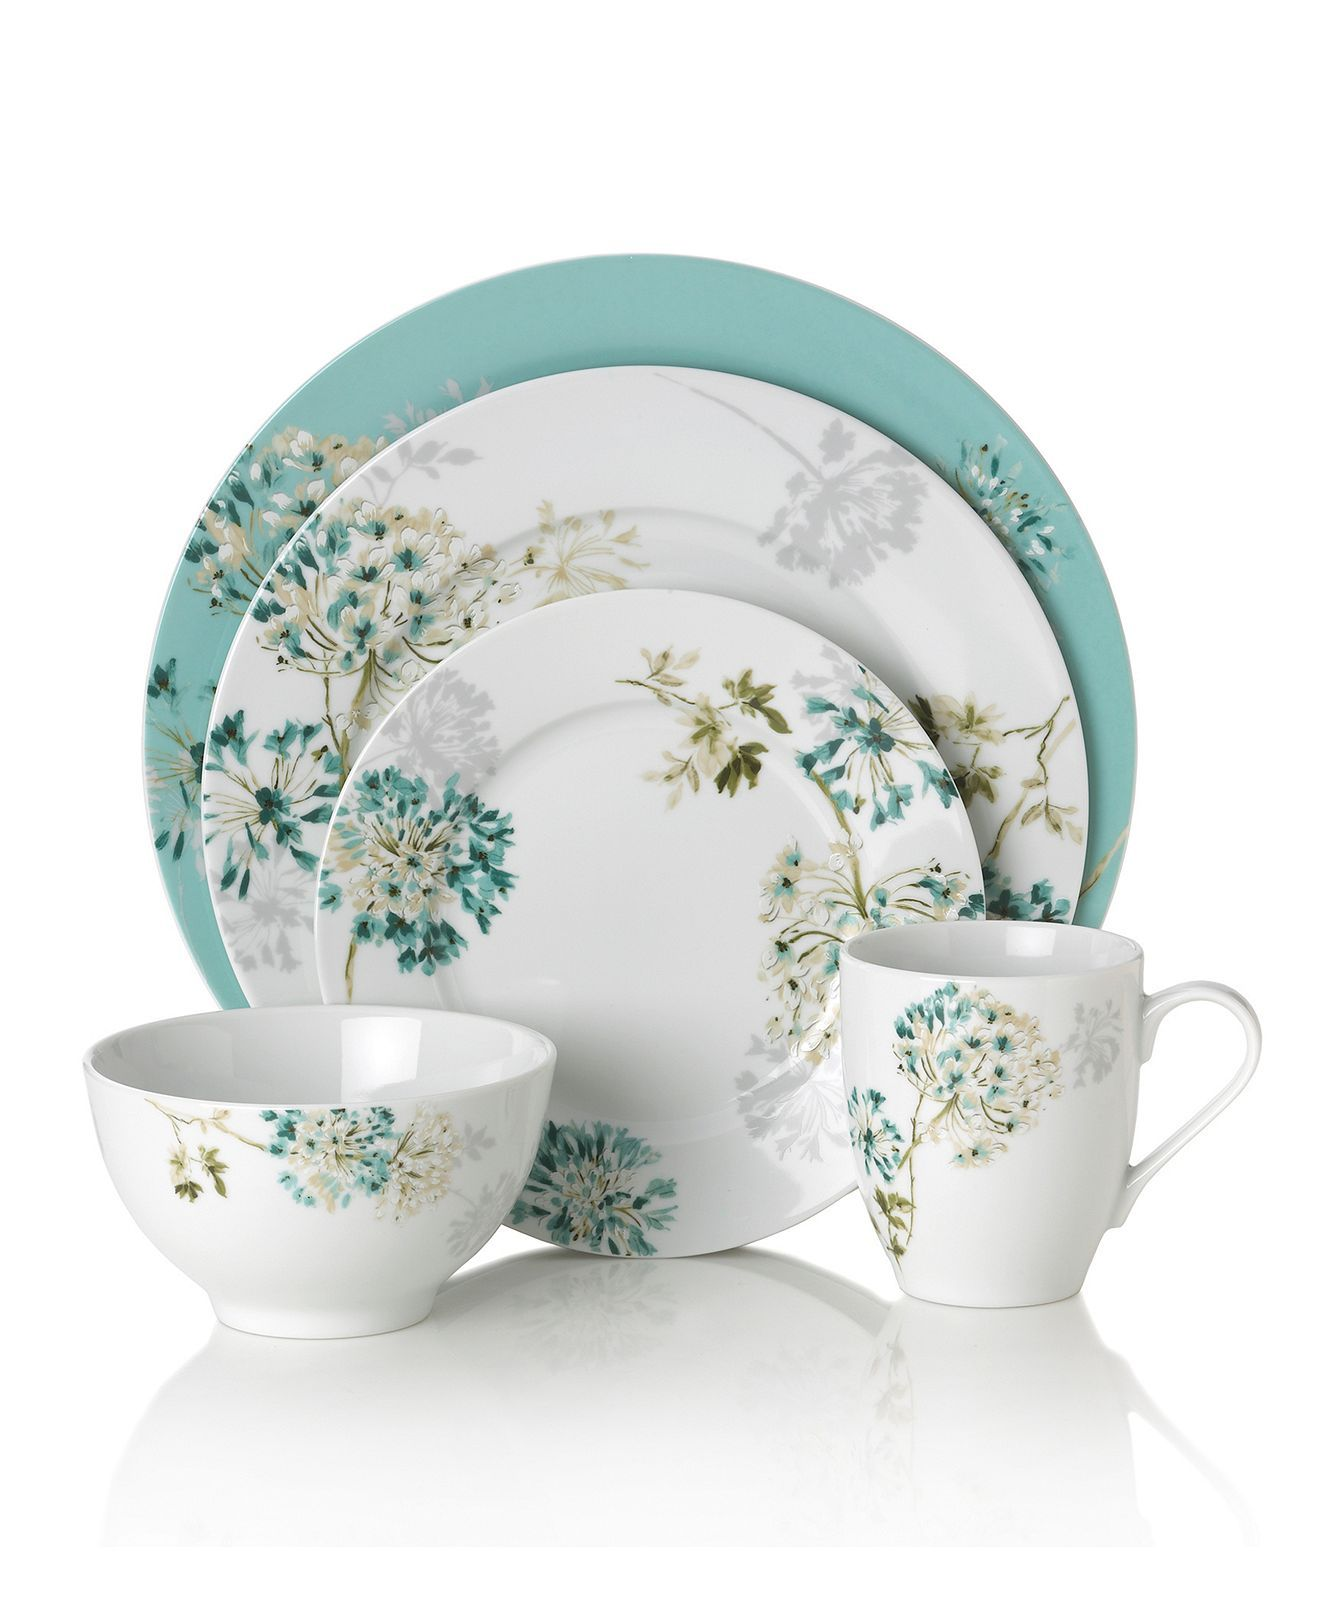 Mikasa Dinnerware Teal Silk Floral Collection Casual Dinnerware Dining Amp Entertaining